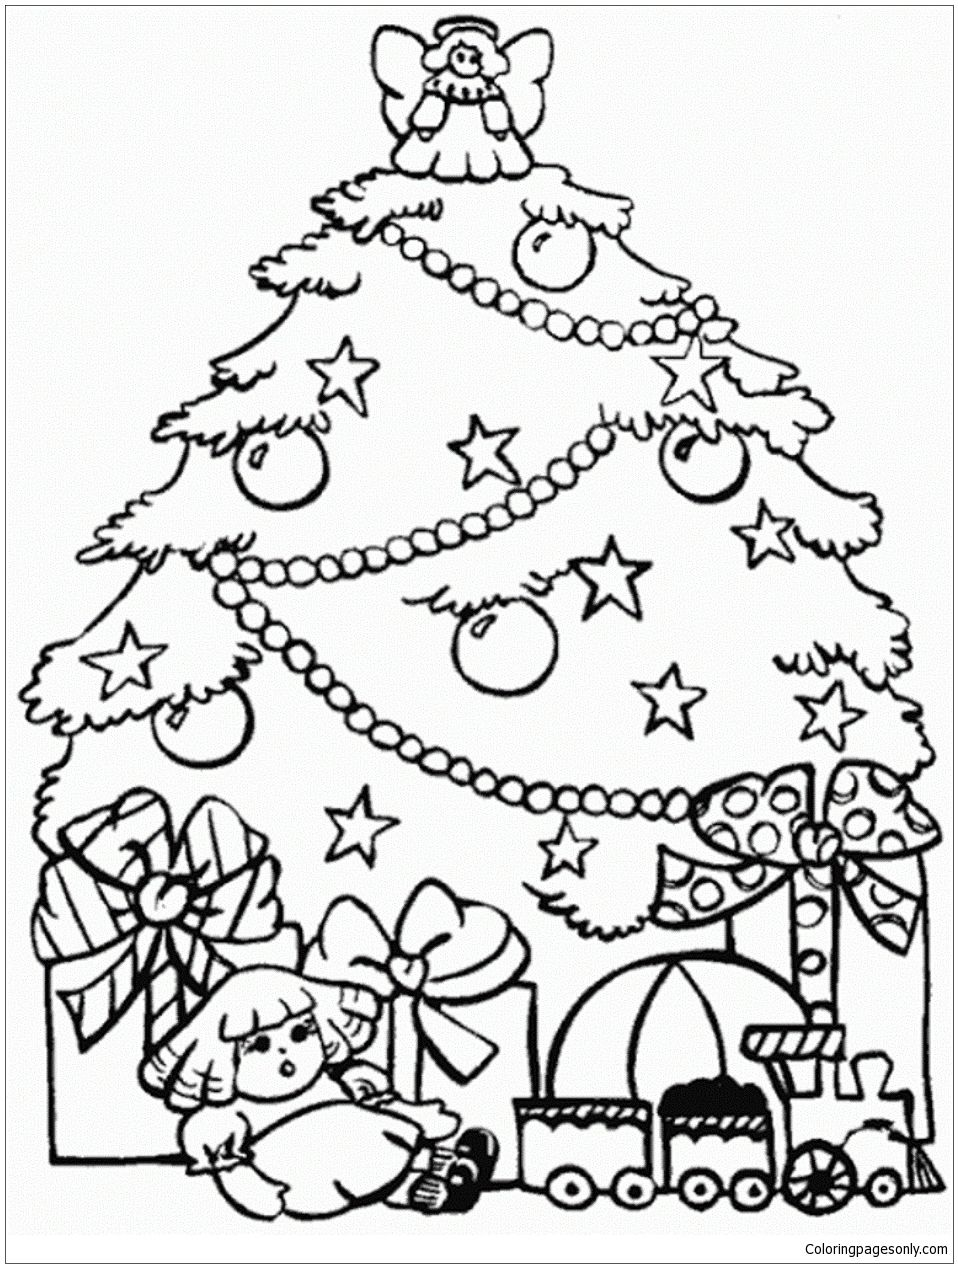 Christmas Coloring Pages Trees With Presents And Tree Page